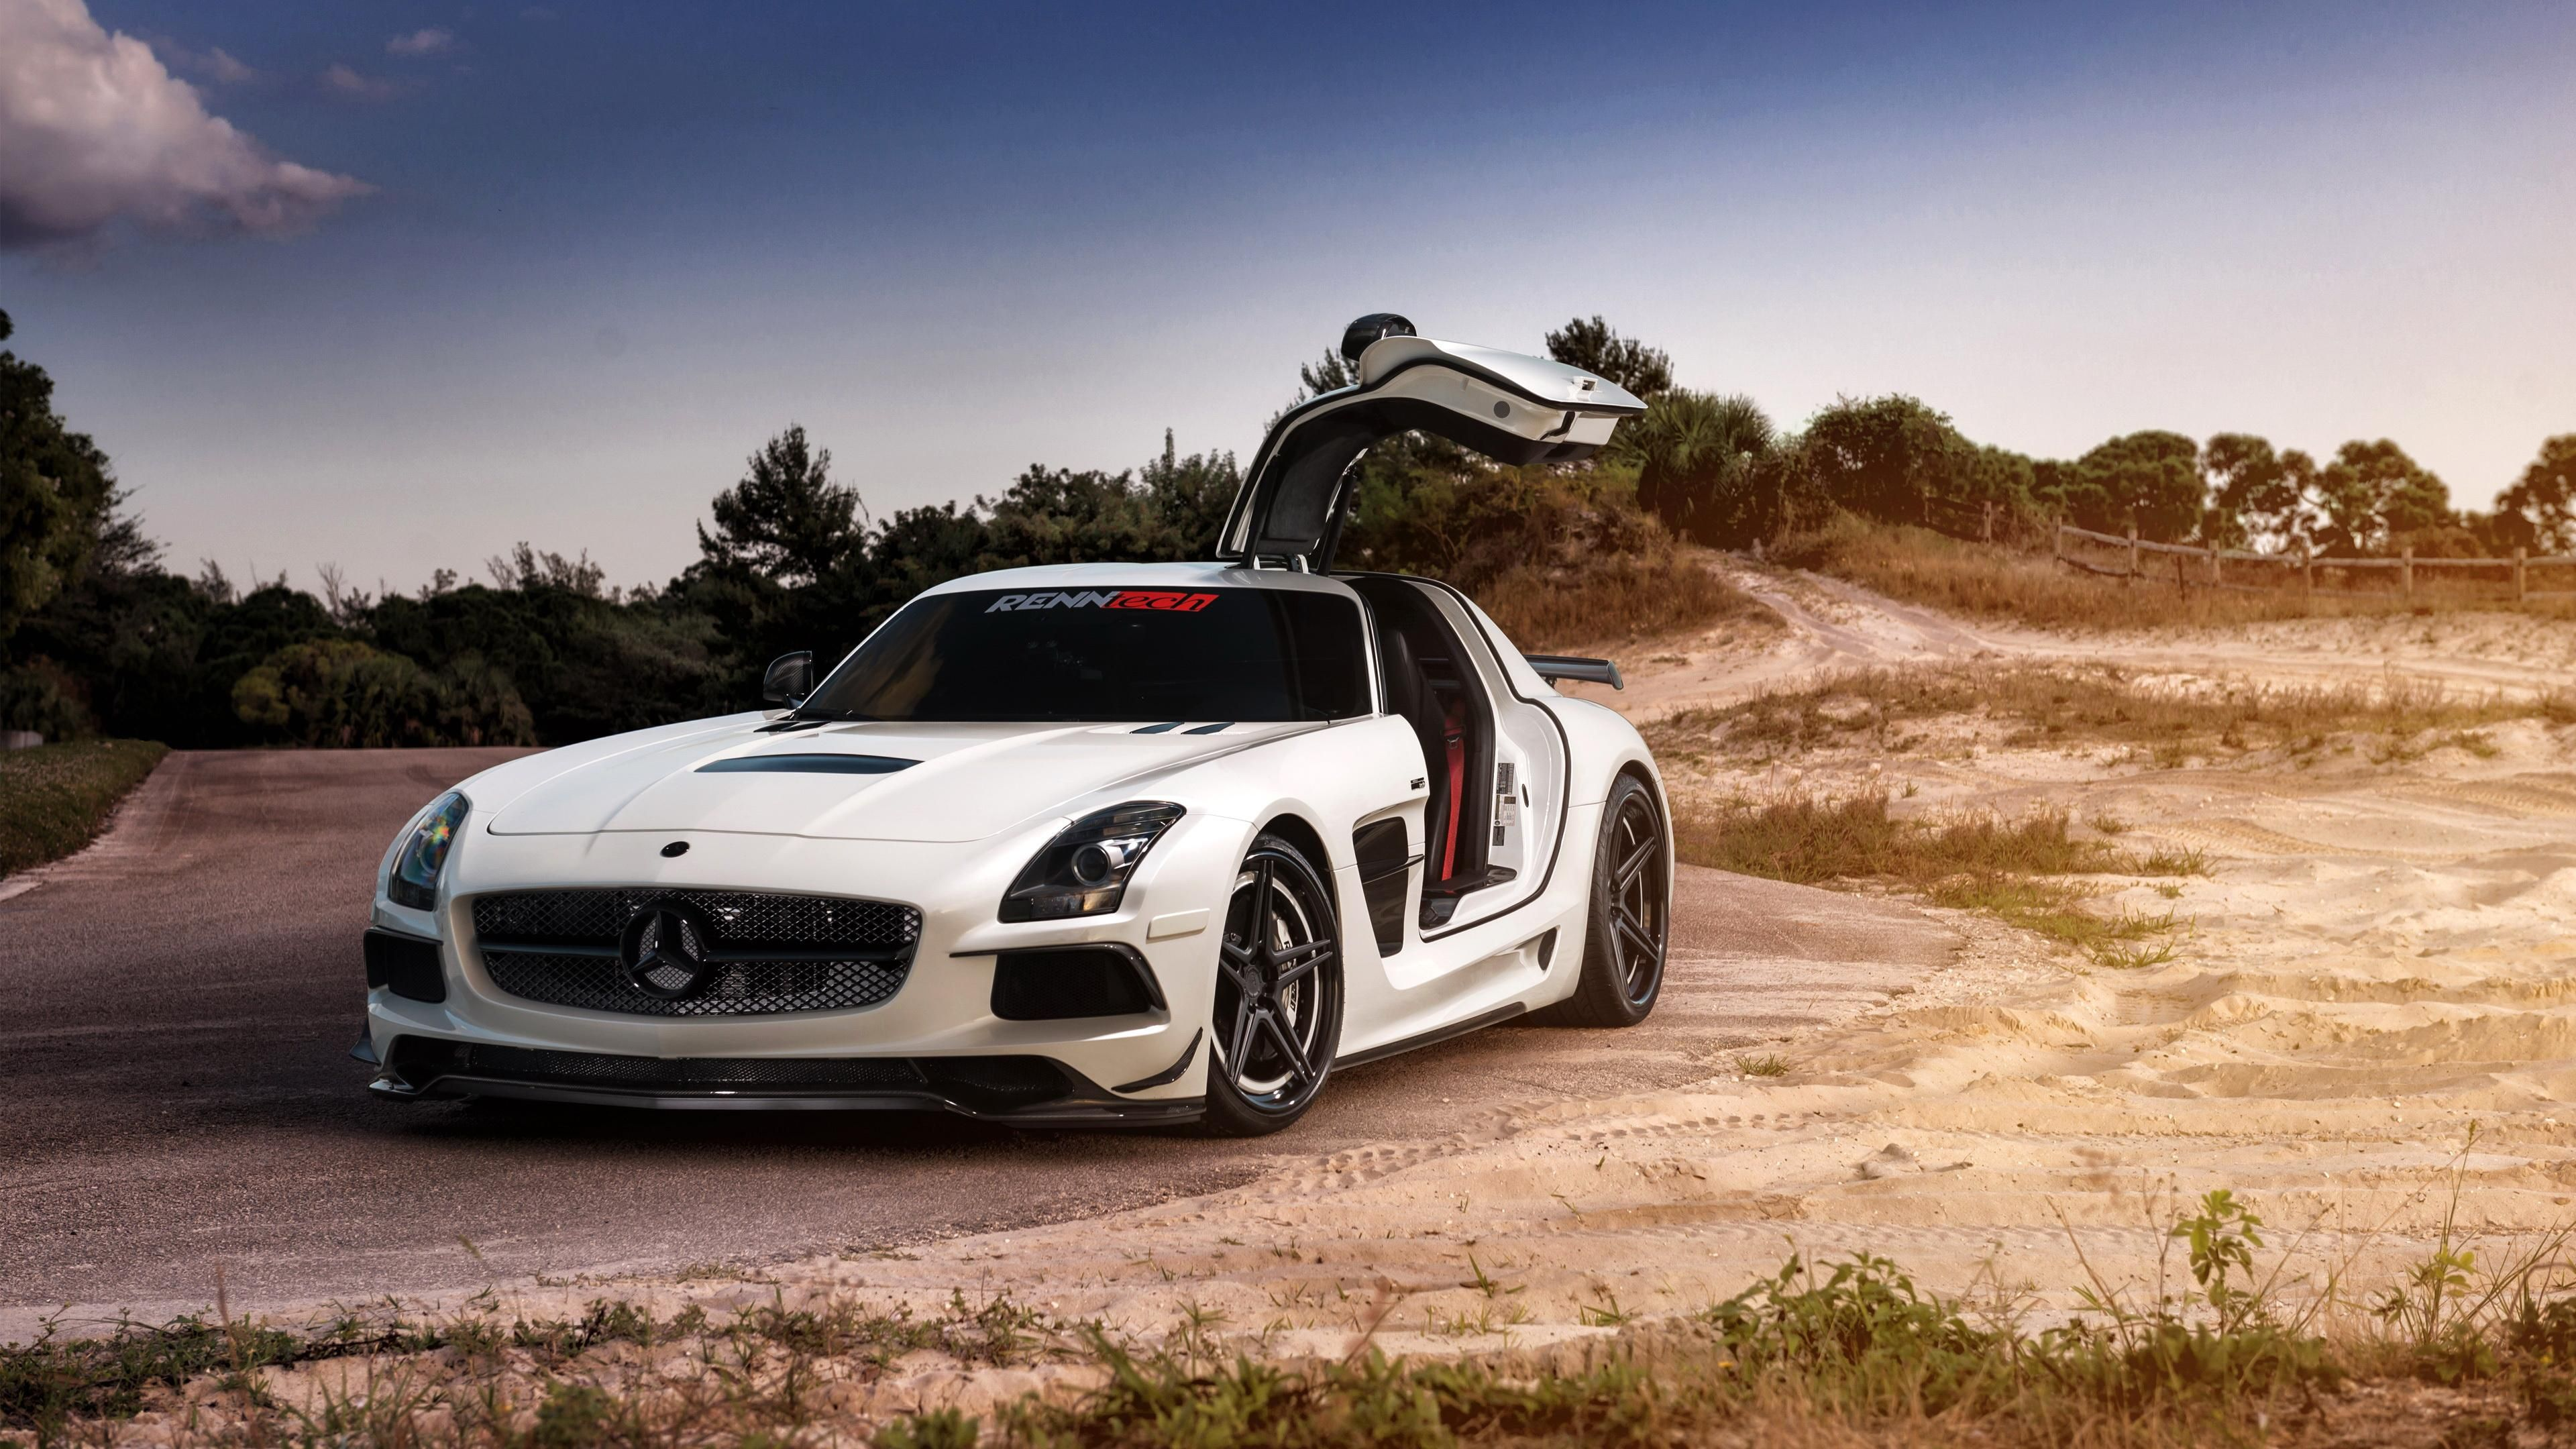 Wallpaper 4k Mercedes Sls Amg 4k 4k Wallpapers Amg Wallpapers